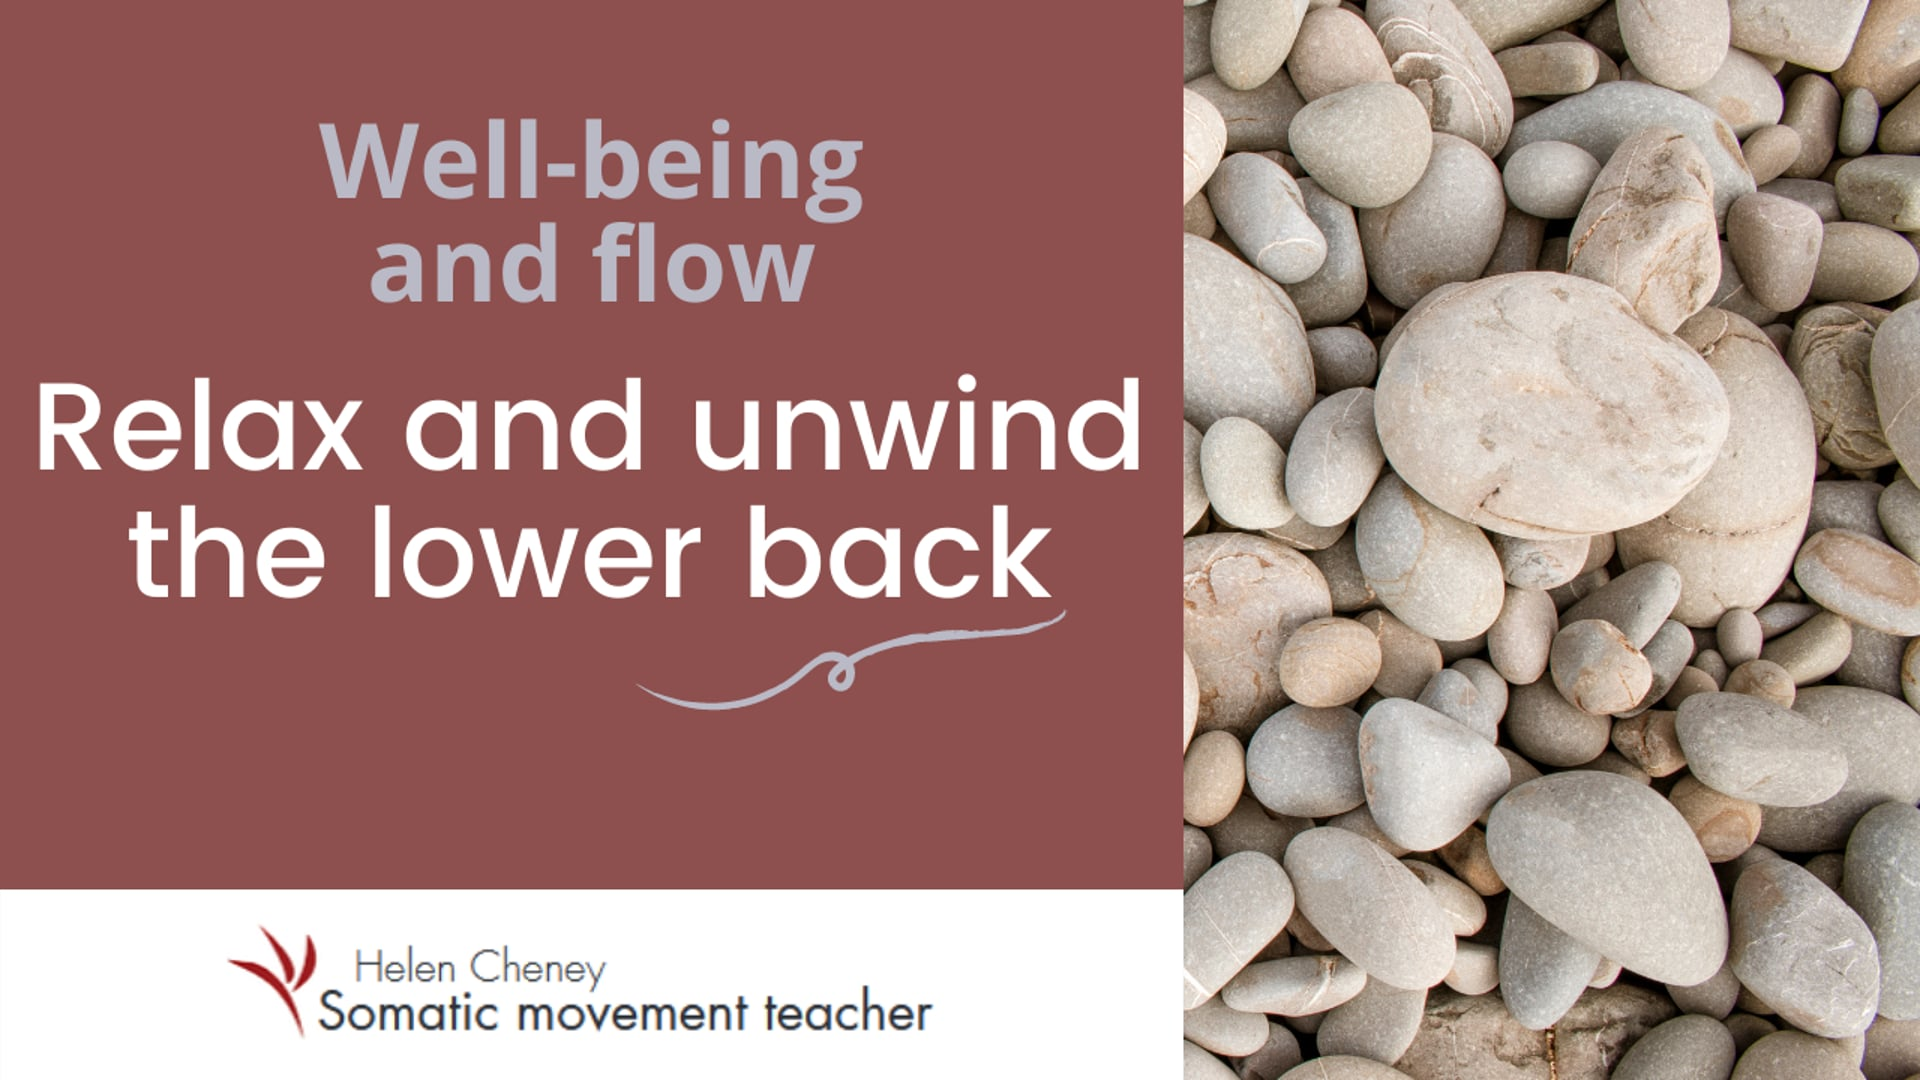 Relax and unwind the lower back